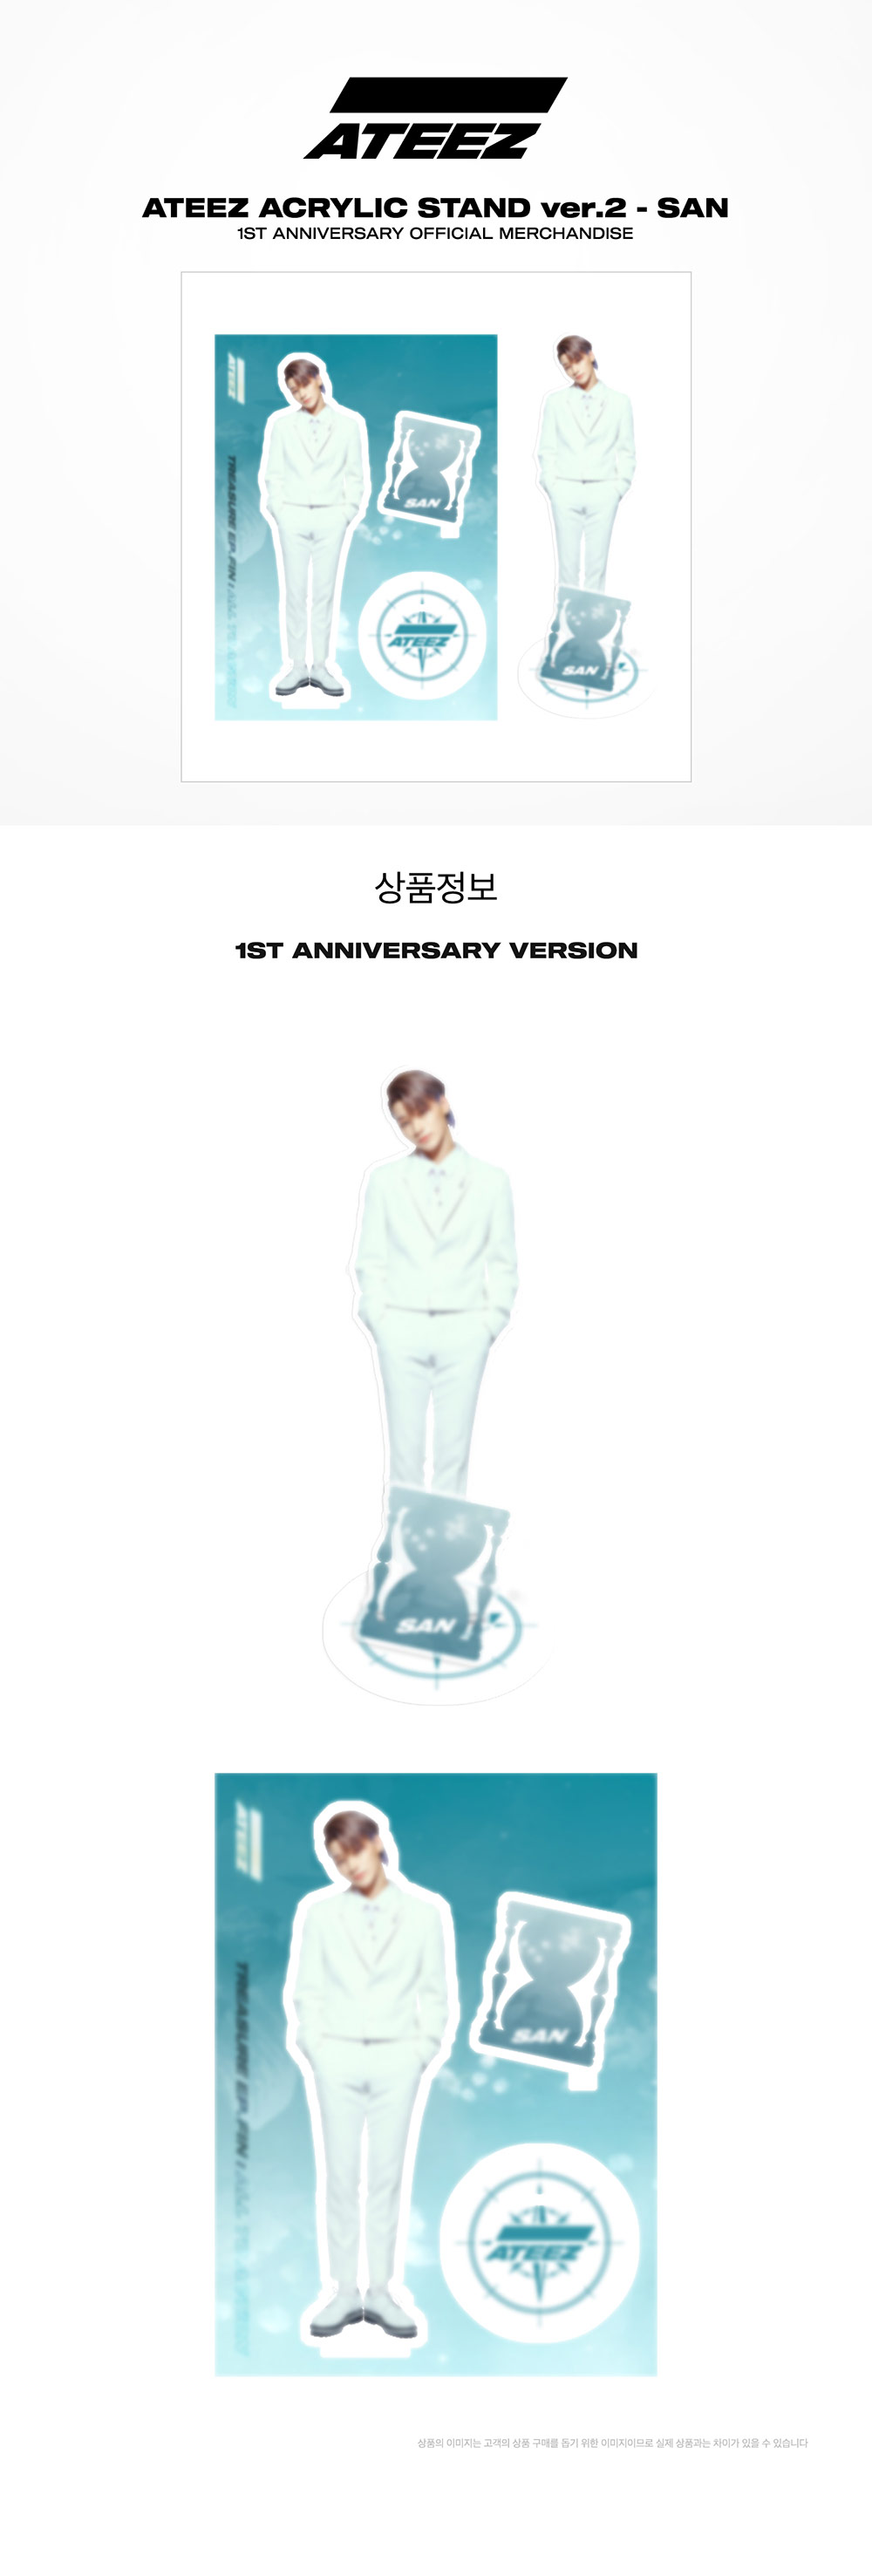 ateez_1st_anniversary_ACRYLIC_STAND2-3